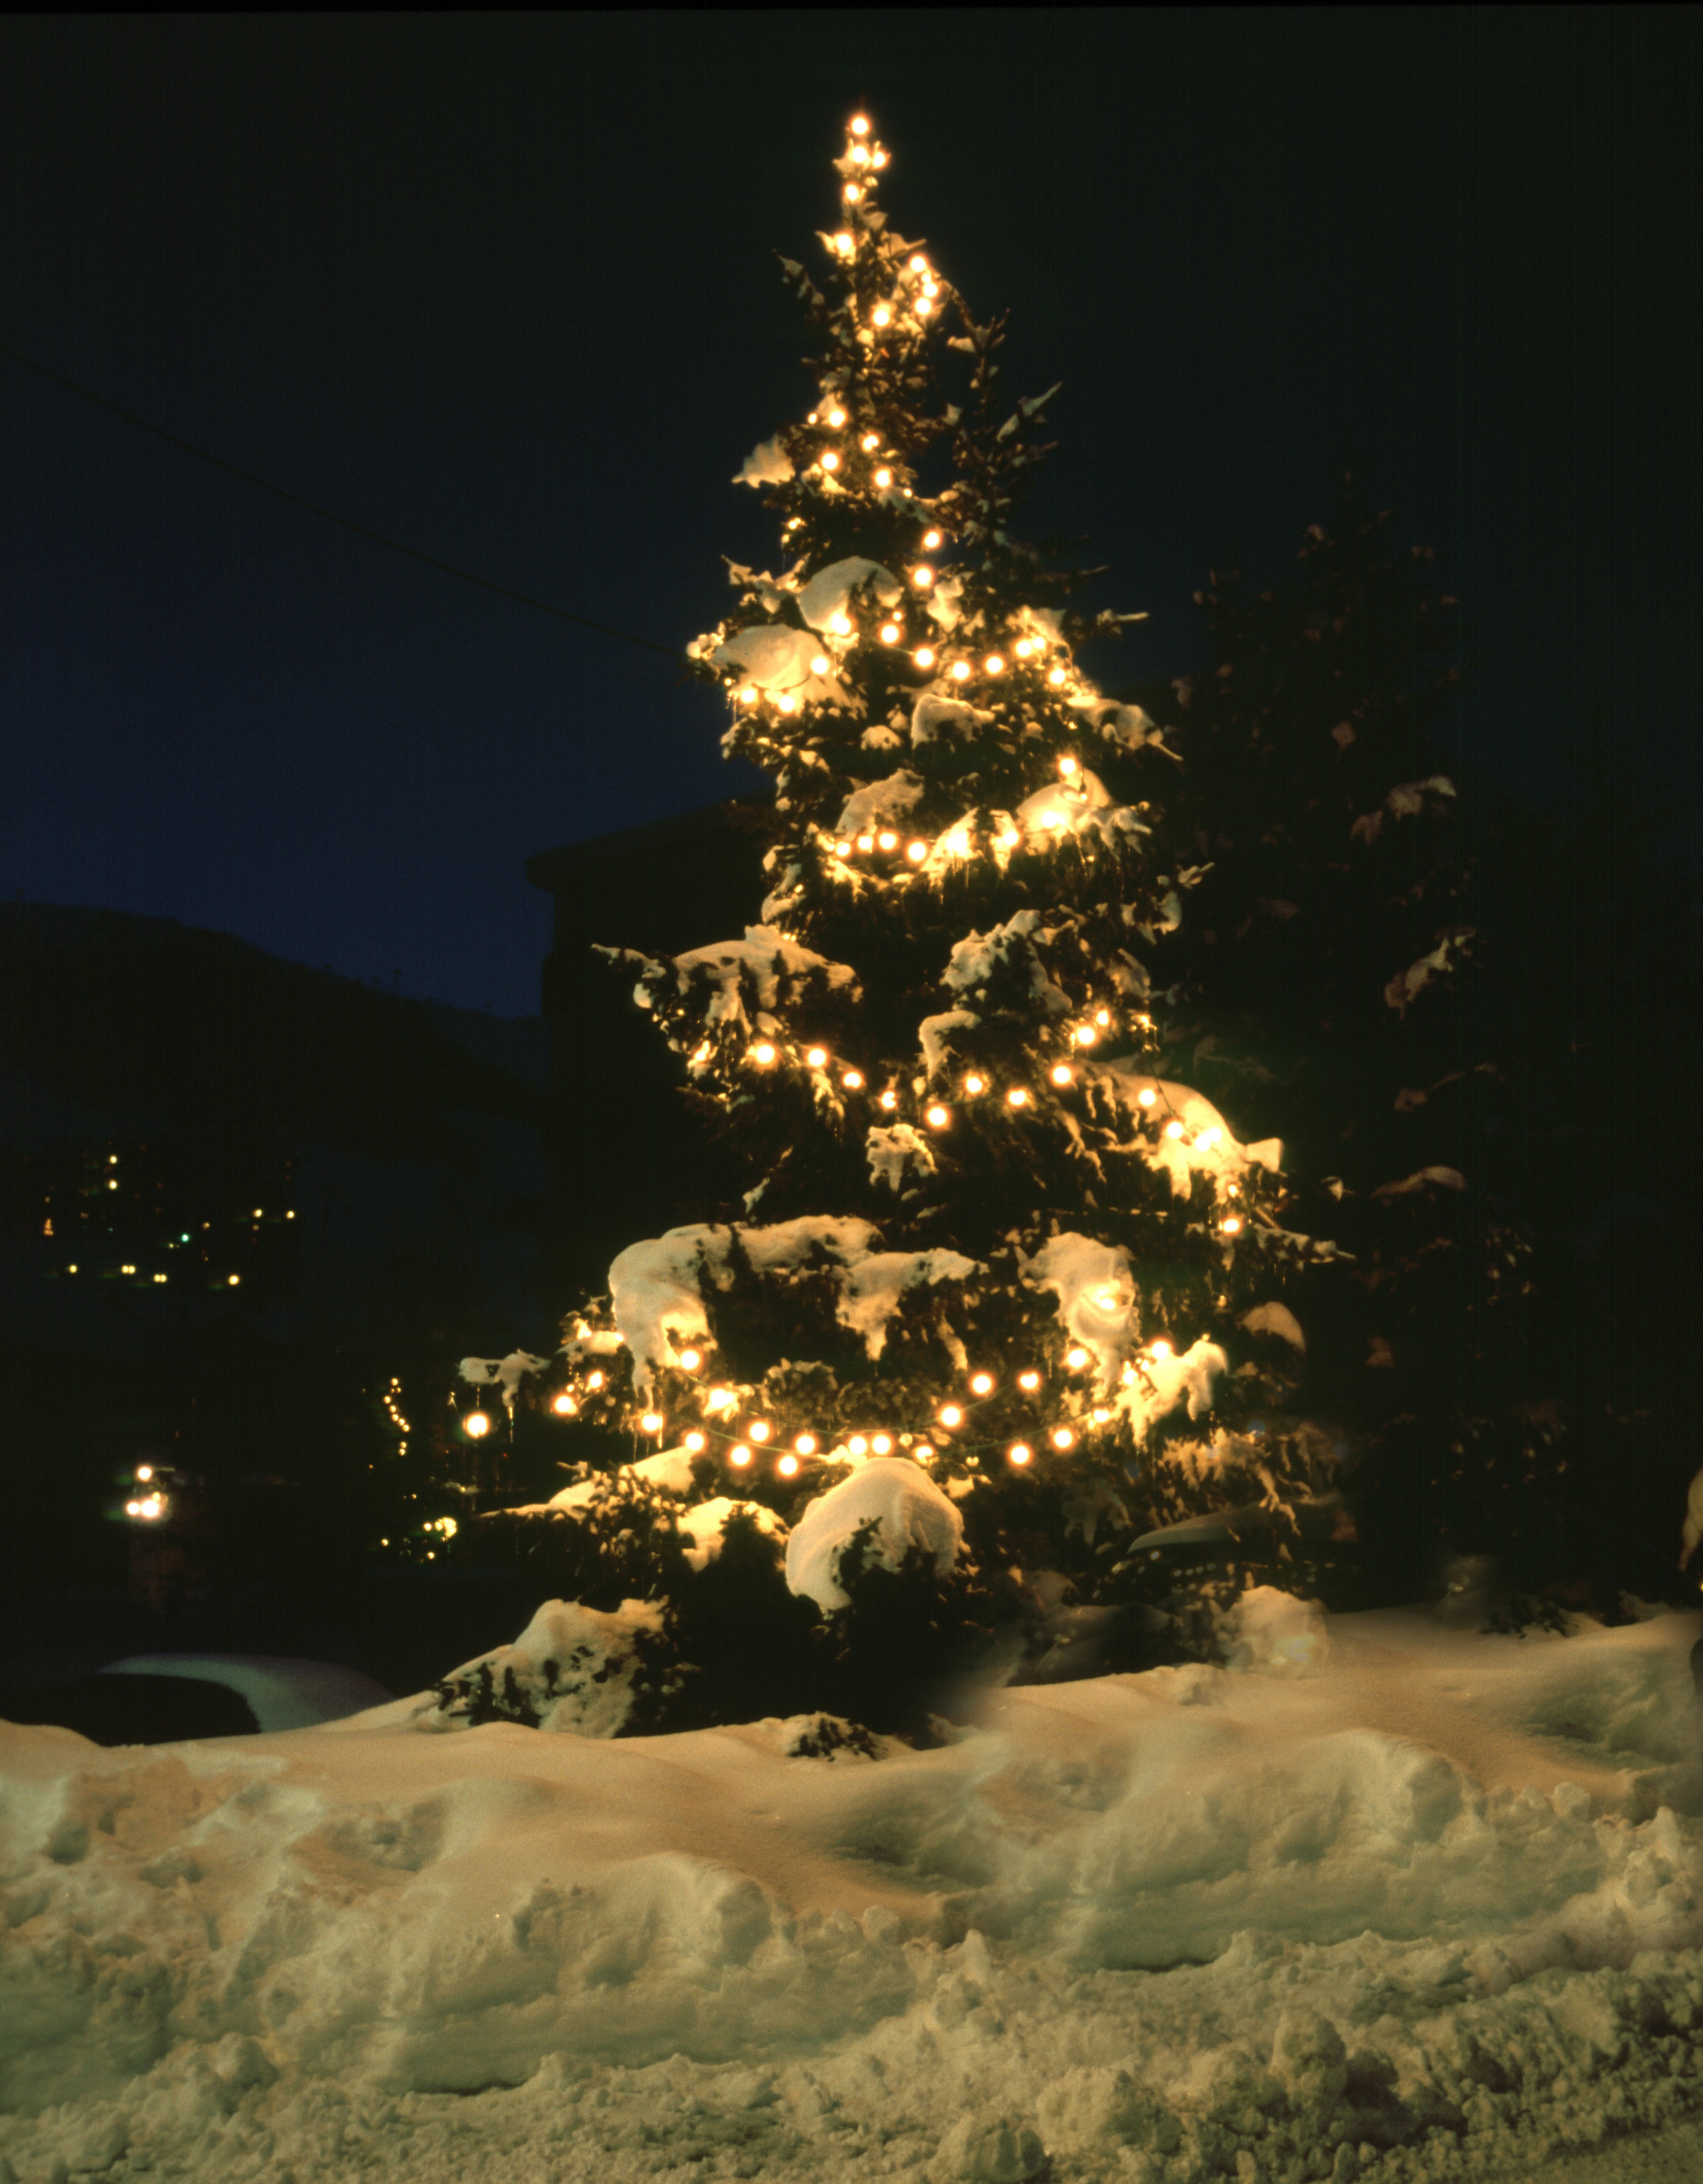 a fir tree covered in snow and decorated with white christmas light